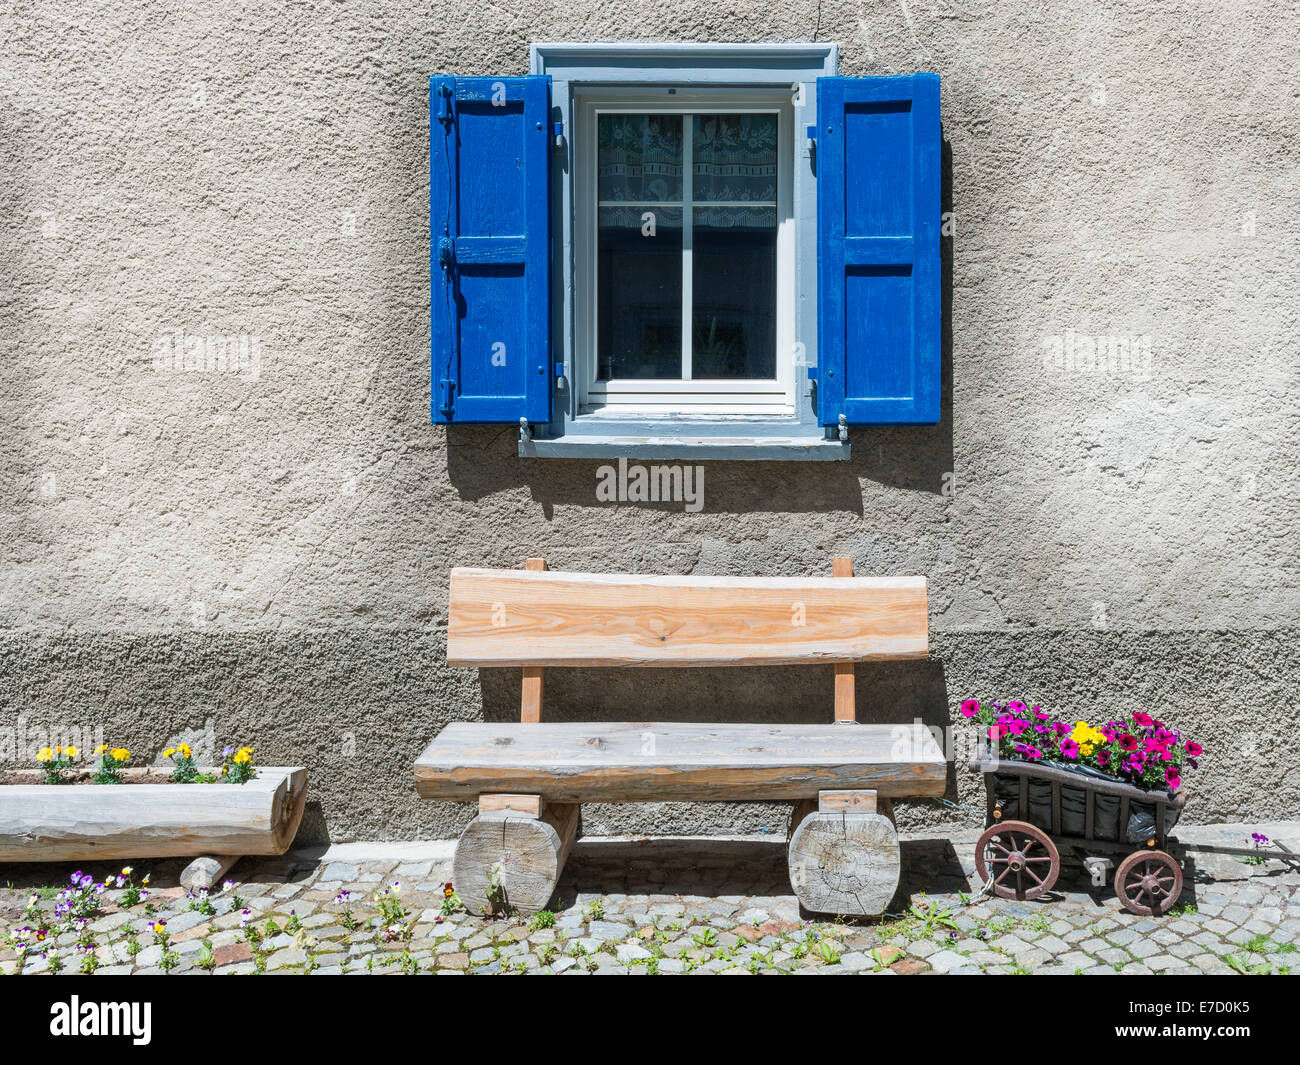 Window with shutters, wooden bench. Small truck, stylized as flower pot. Cozy  simple old times life. - Stock Image